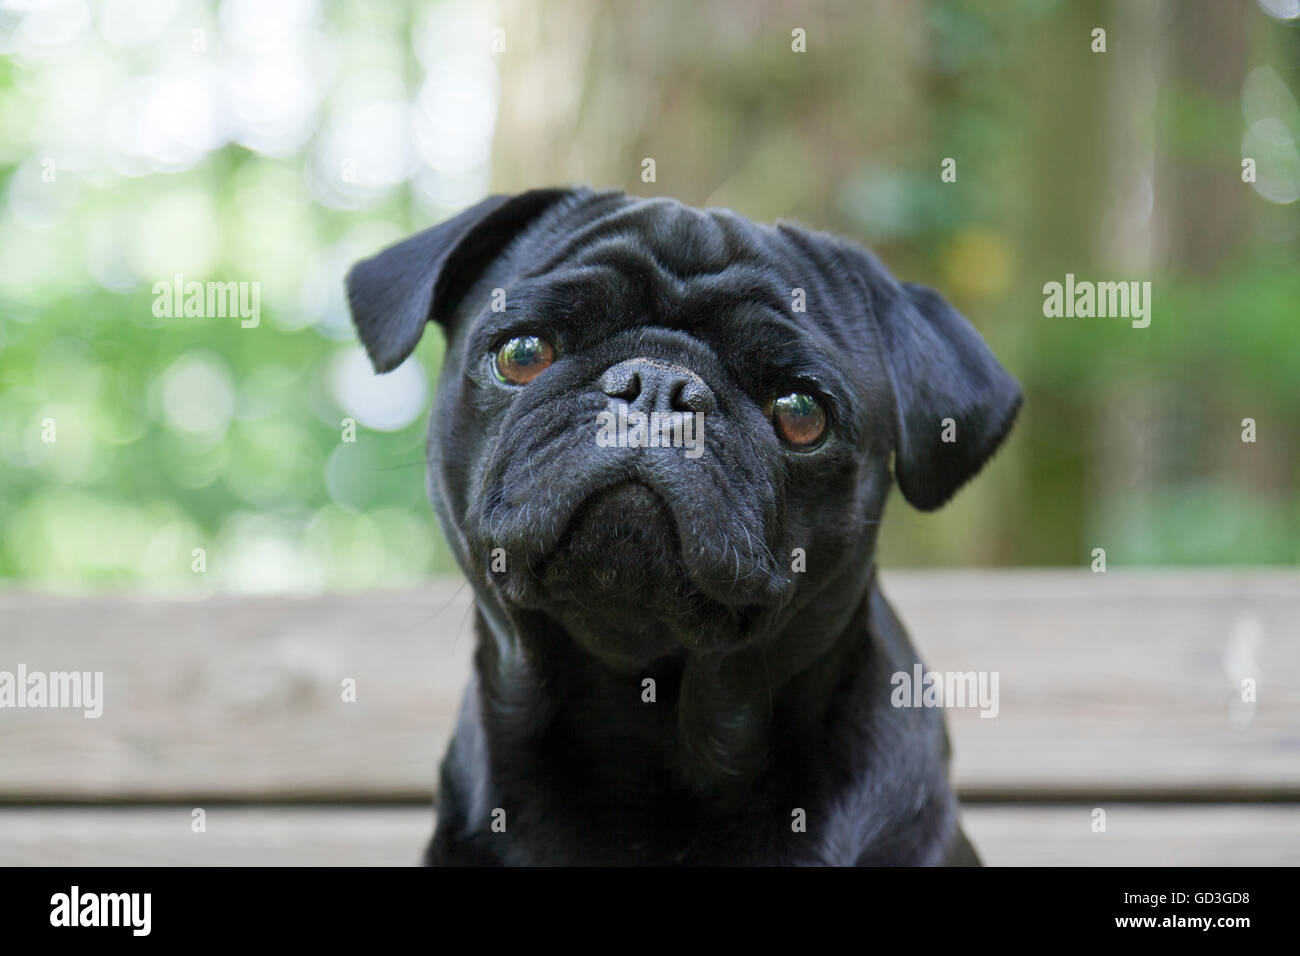 Black Pug, portrait on bench in forest - Stock Image